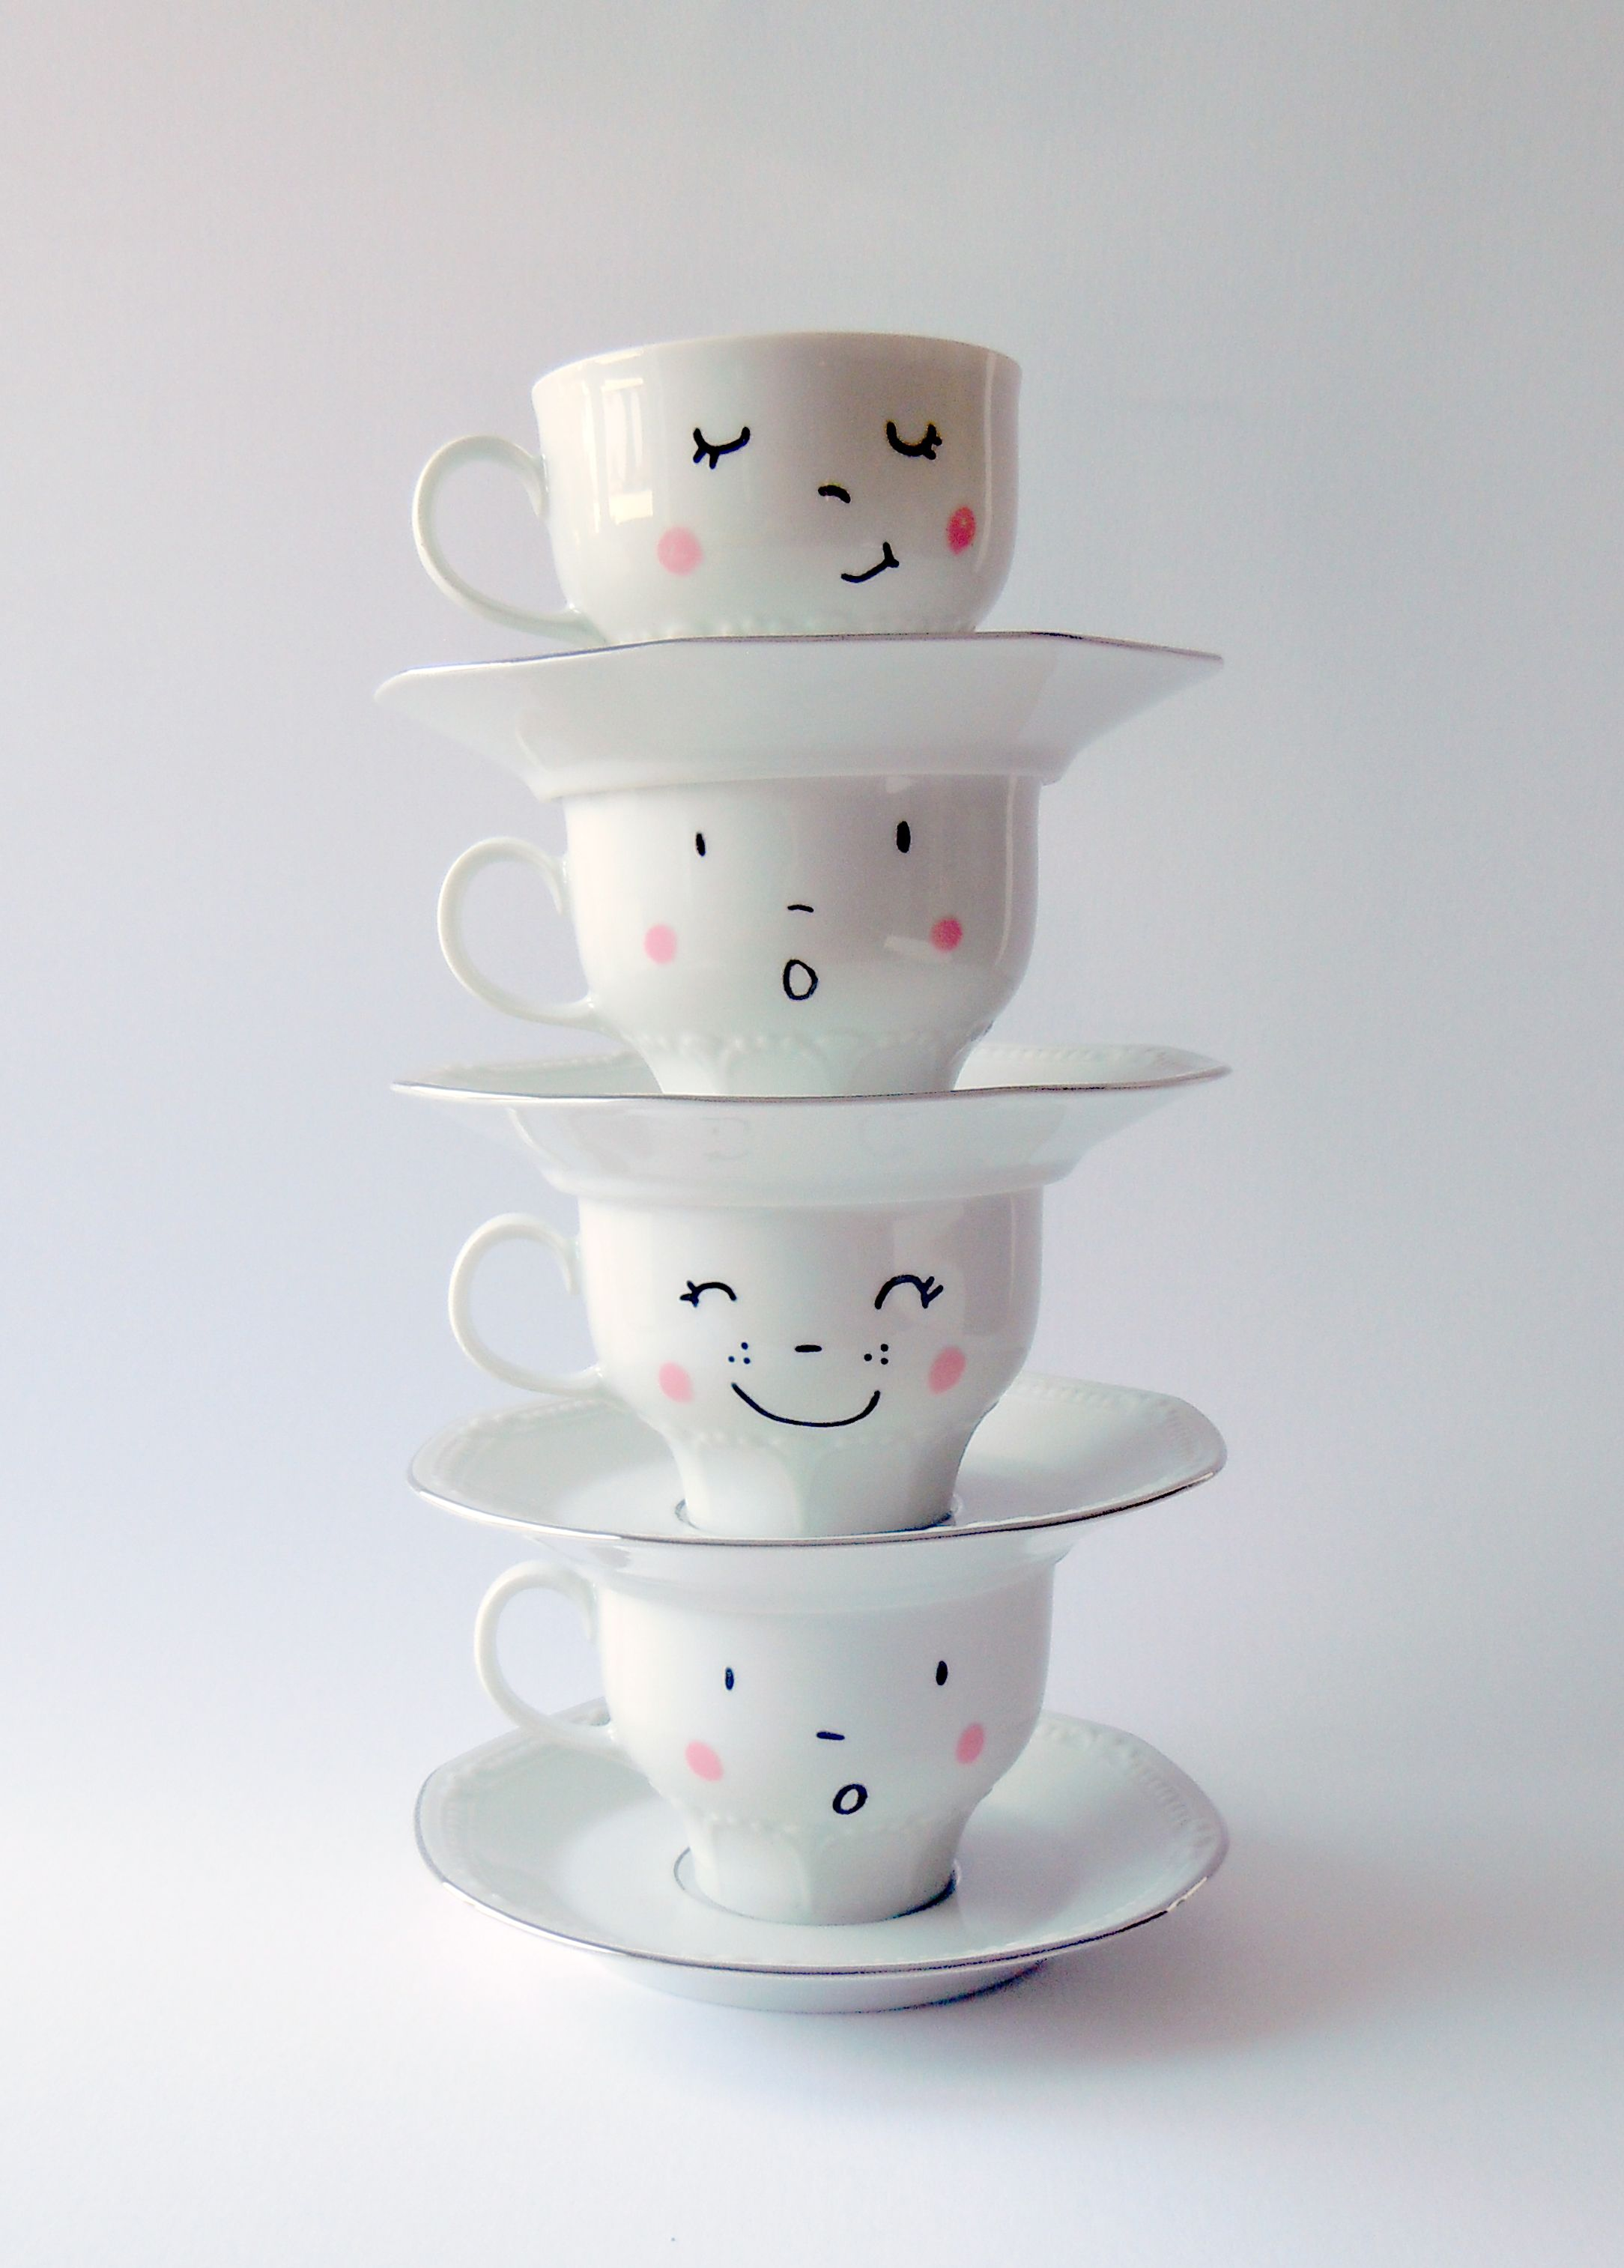 Intriguing Happy Faces Tea Cups Designs By Bodesigns Happy Faces Tea Cups Designs By Bodesigns Deborahvandevelde Cup Designs